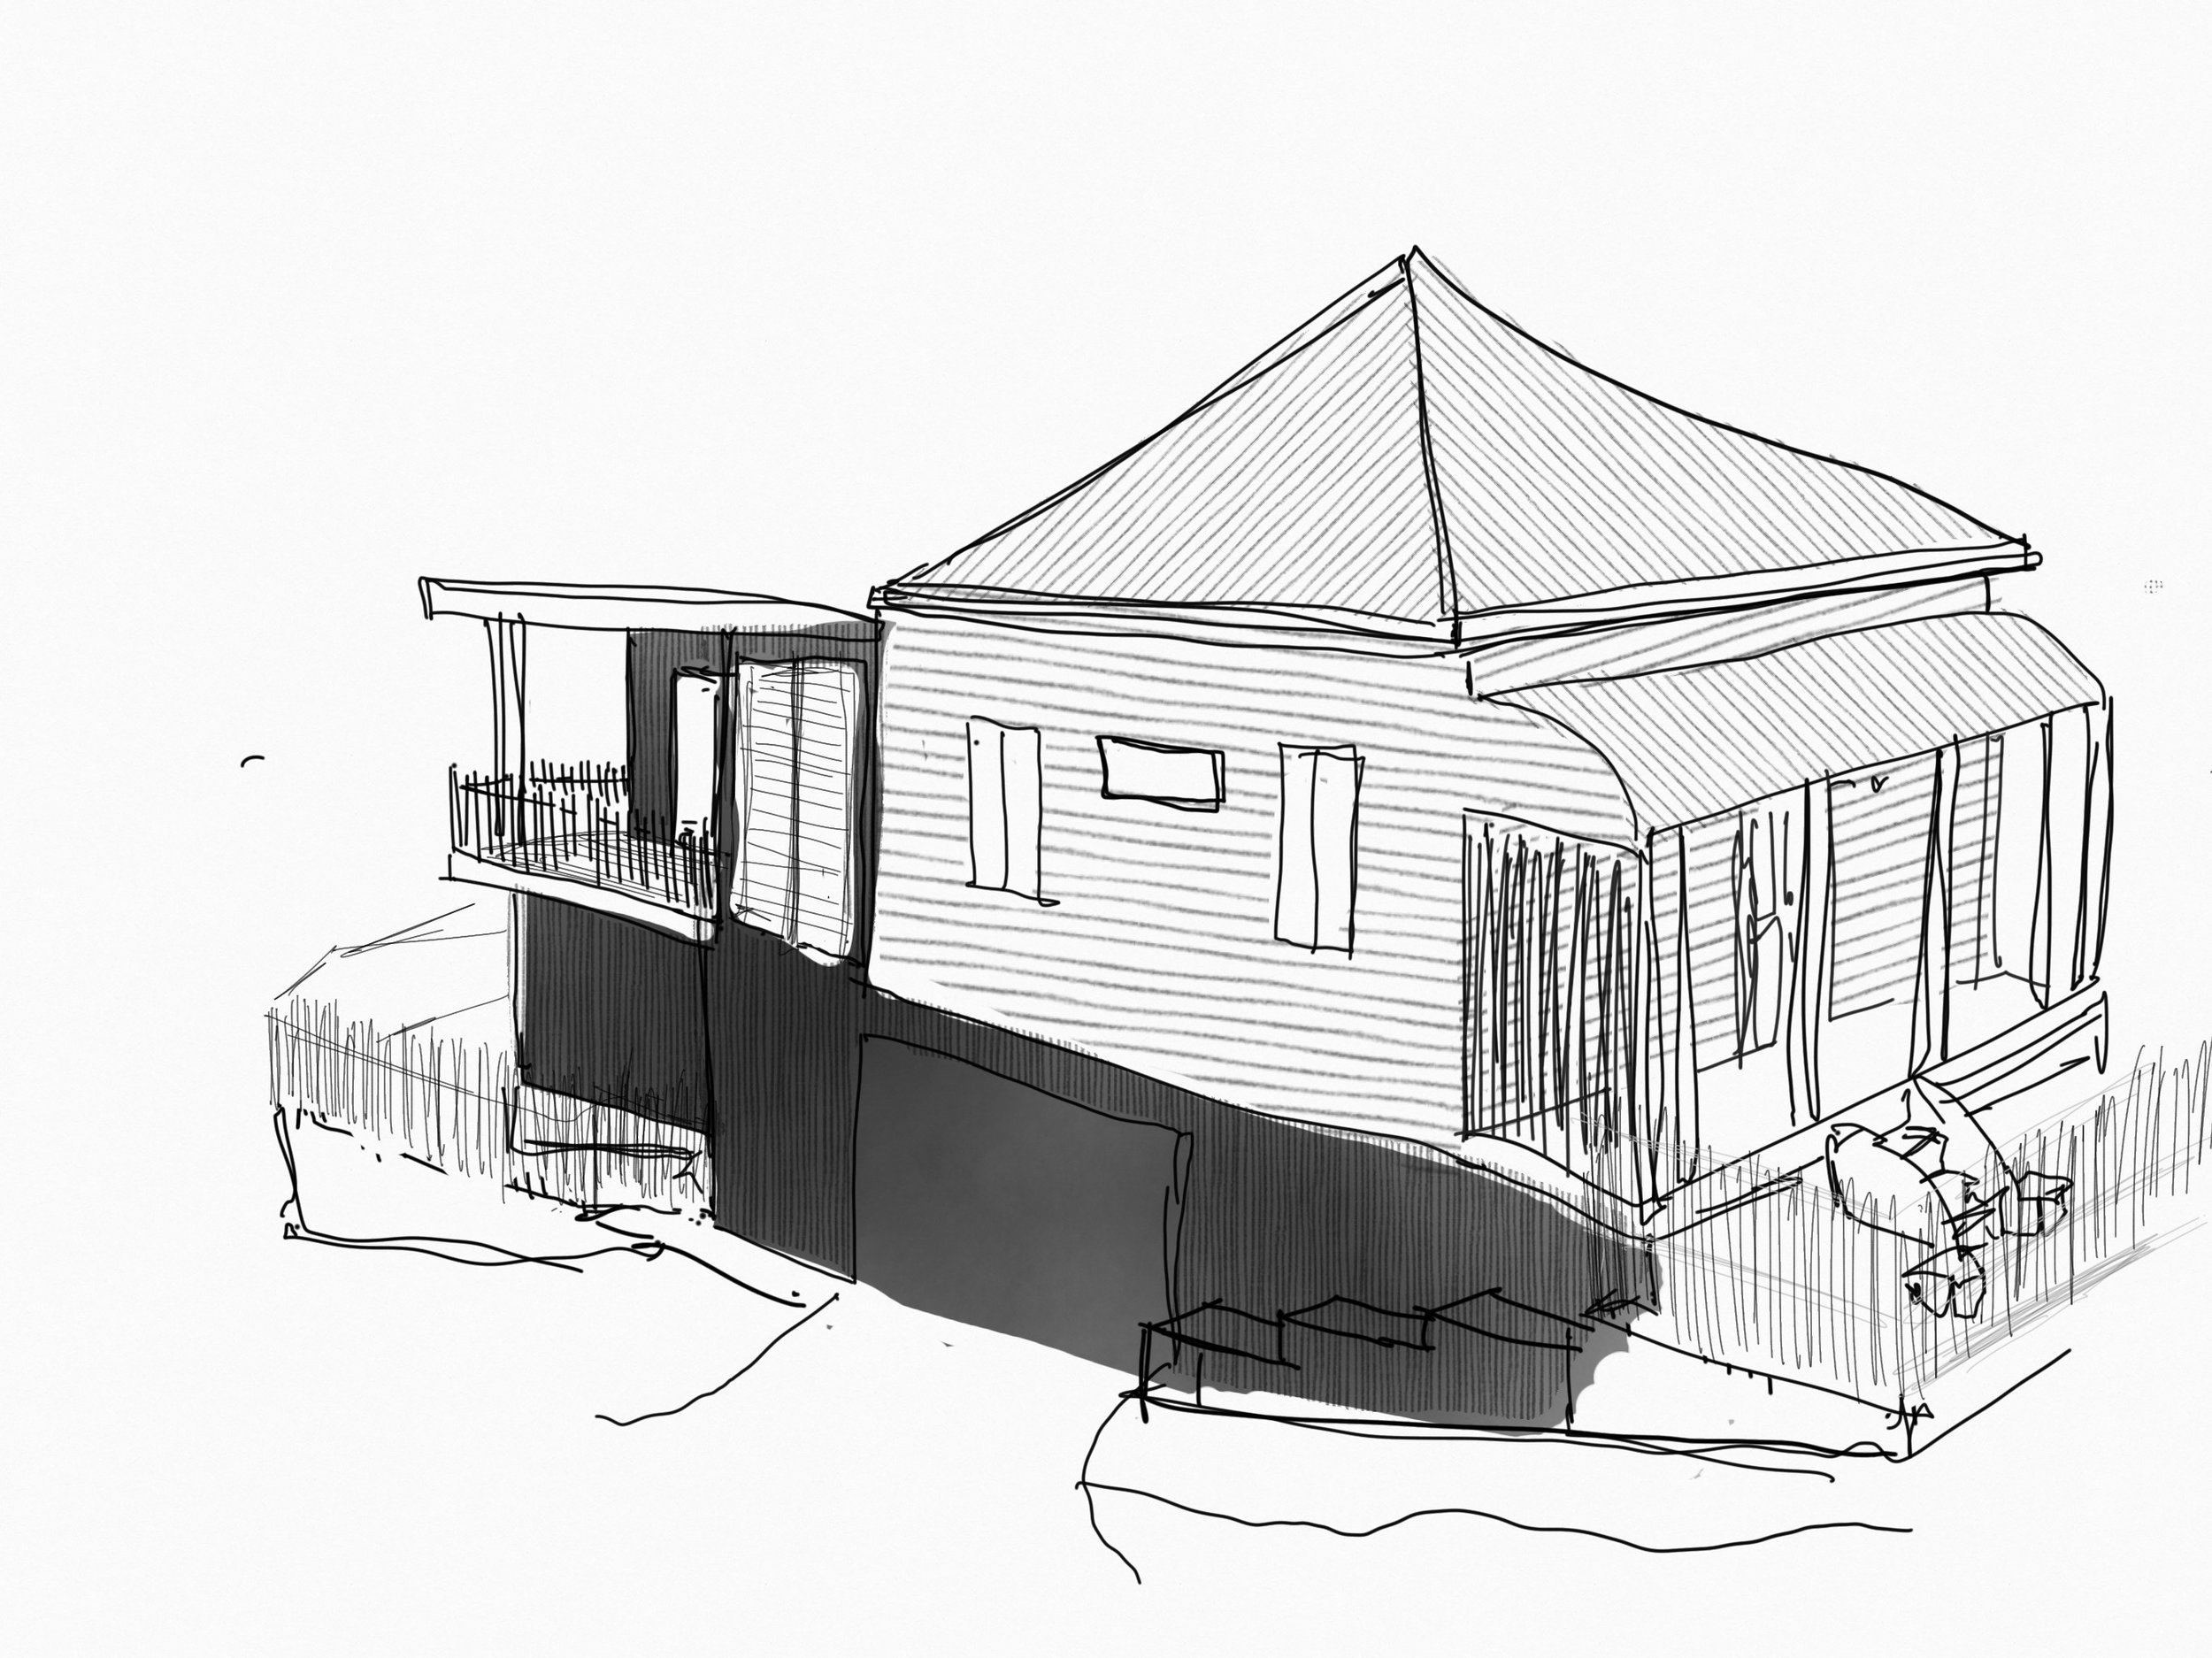 tomfavellarchitects_sketch01.jpg